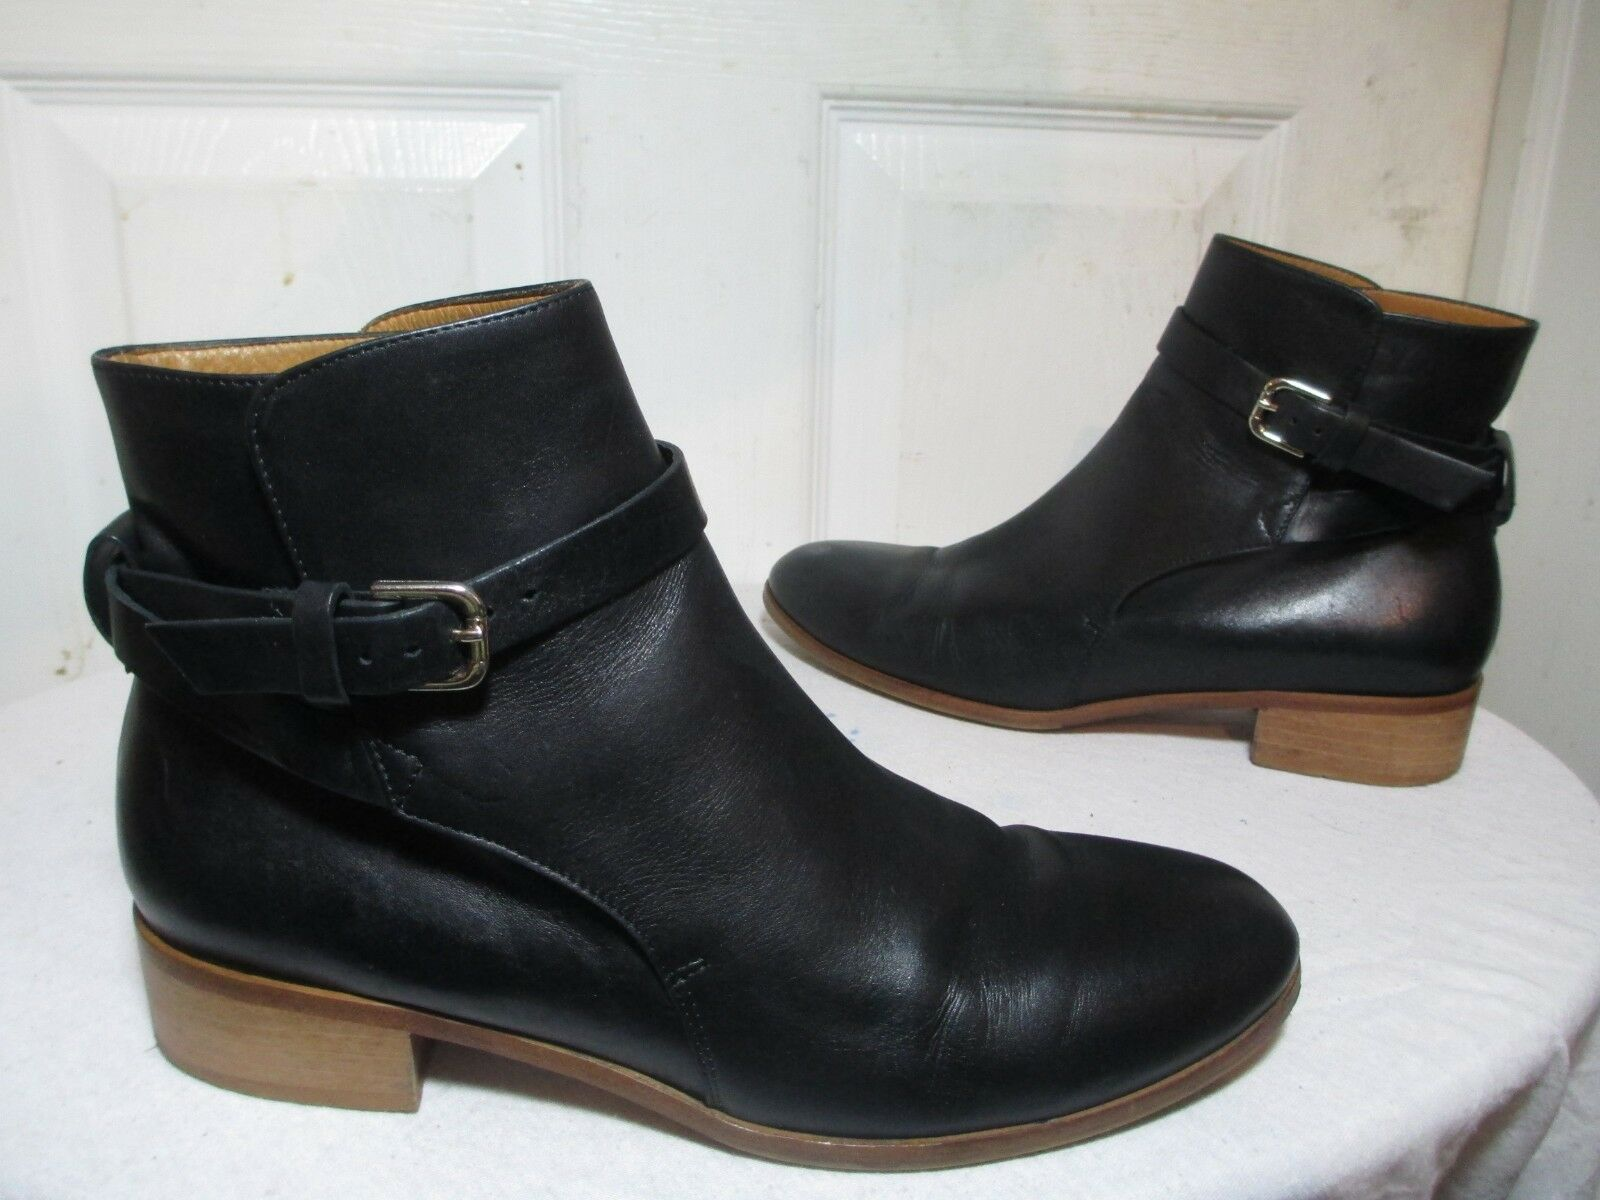 & OTHER STORIES BLACK LEATHER LOW HEEL STRAP ANKLE BOOTS MADE IN ITALY 39 US 9